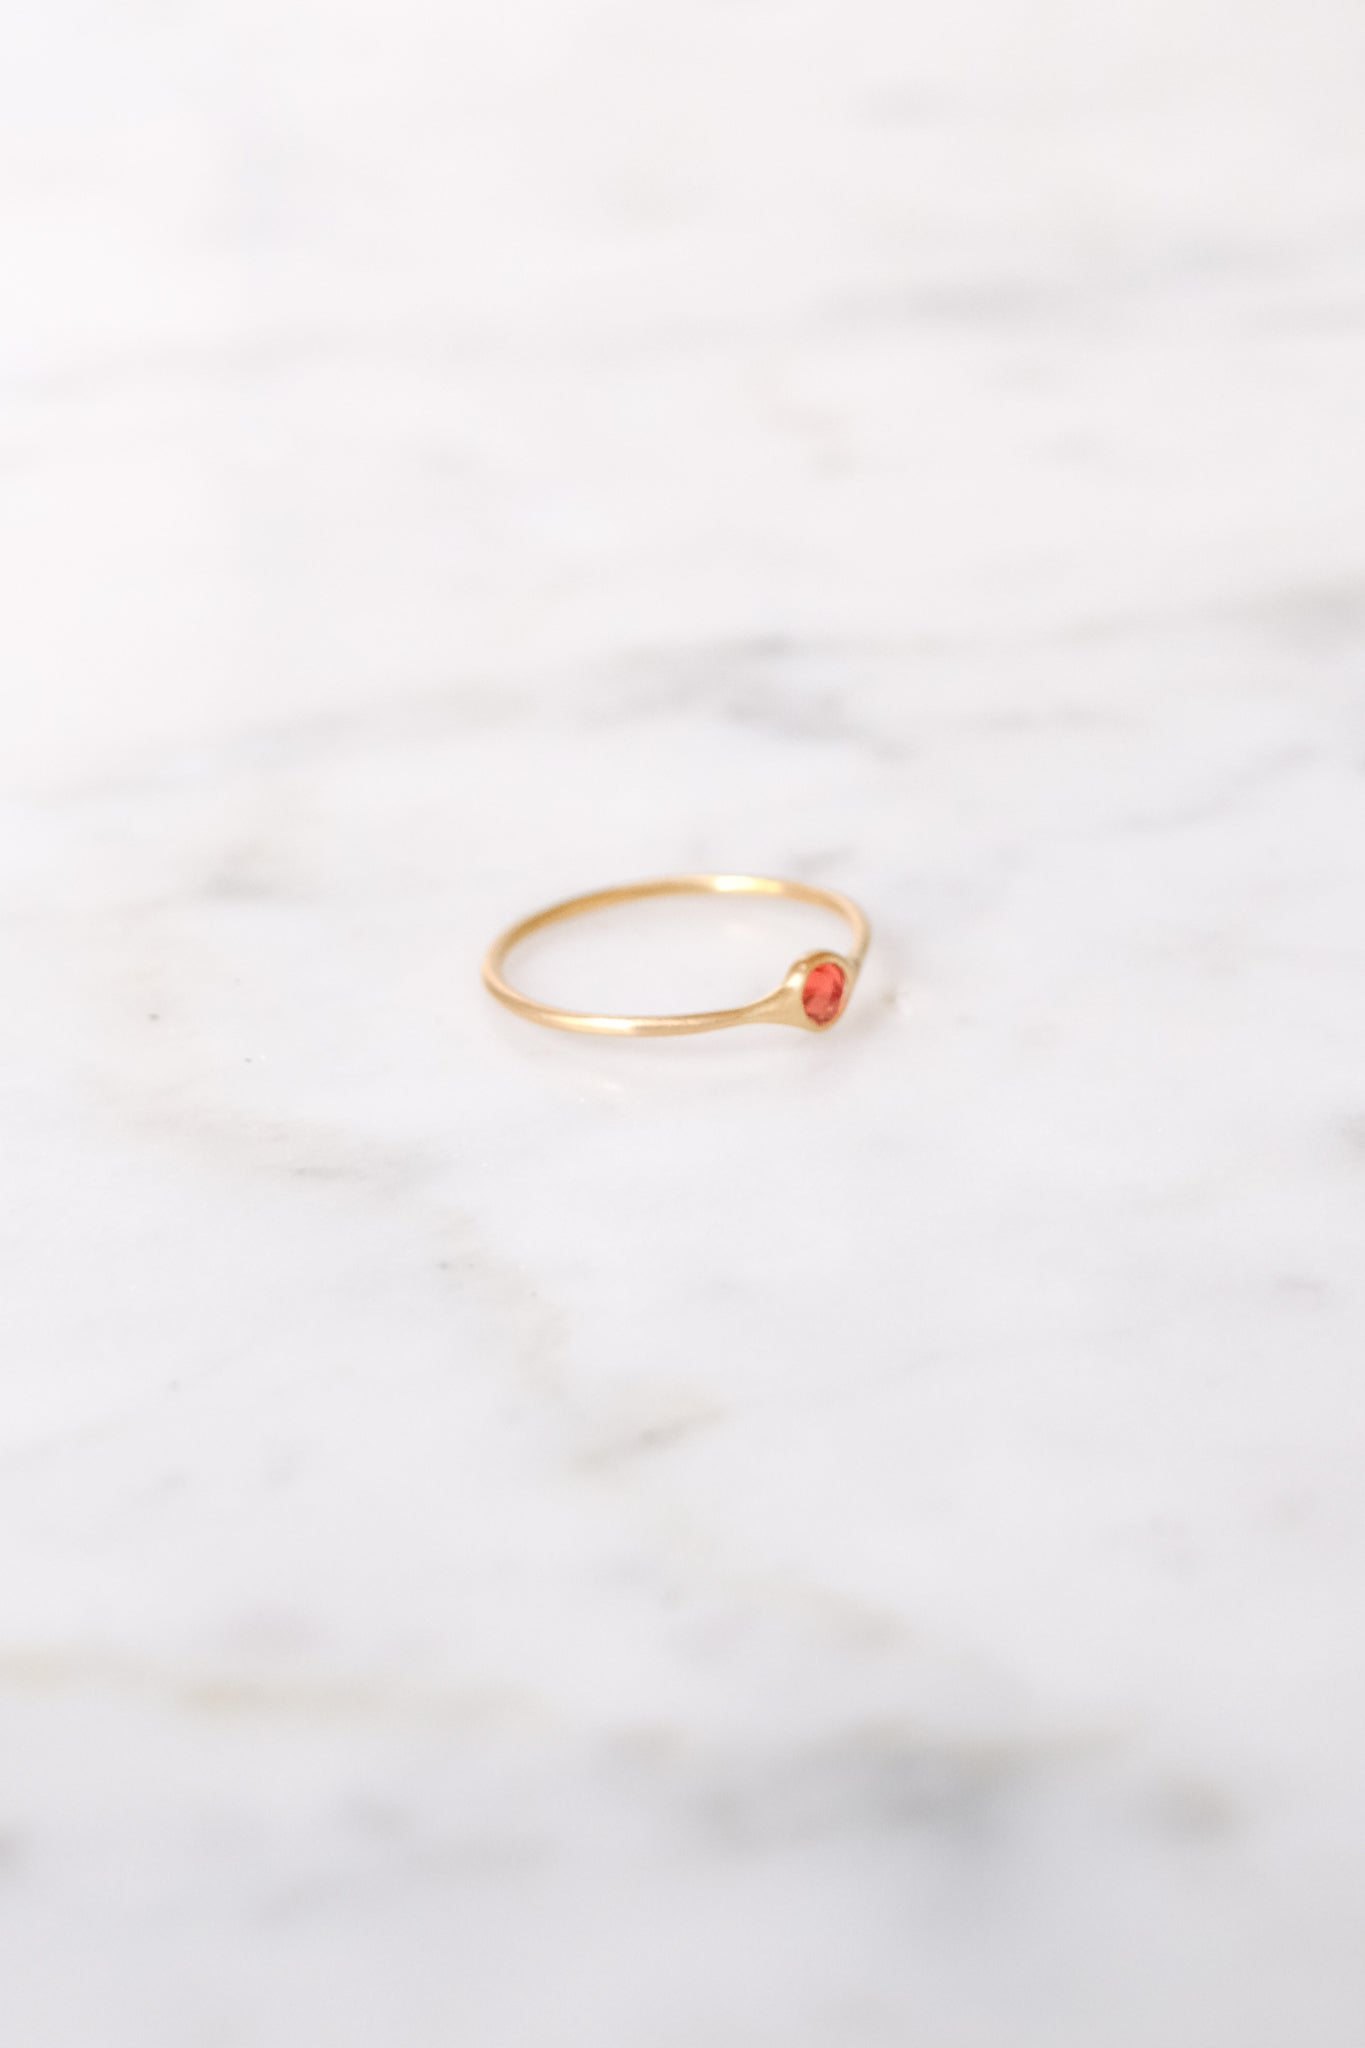 Margaret Solow :: Ring, Golden Orange Sapphire 18kt